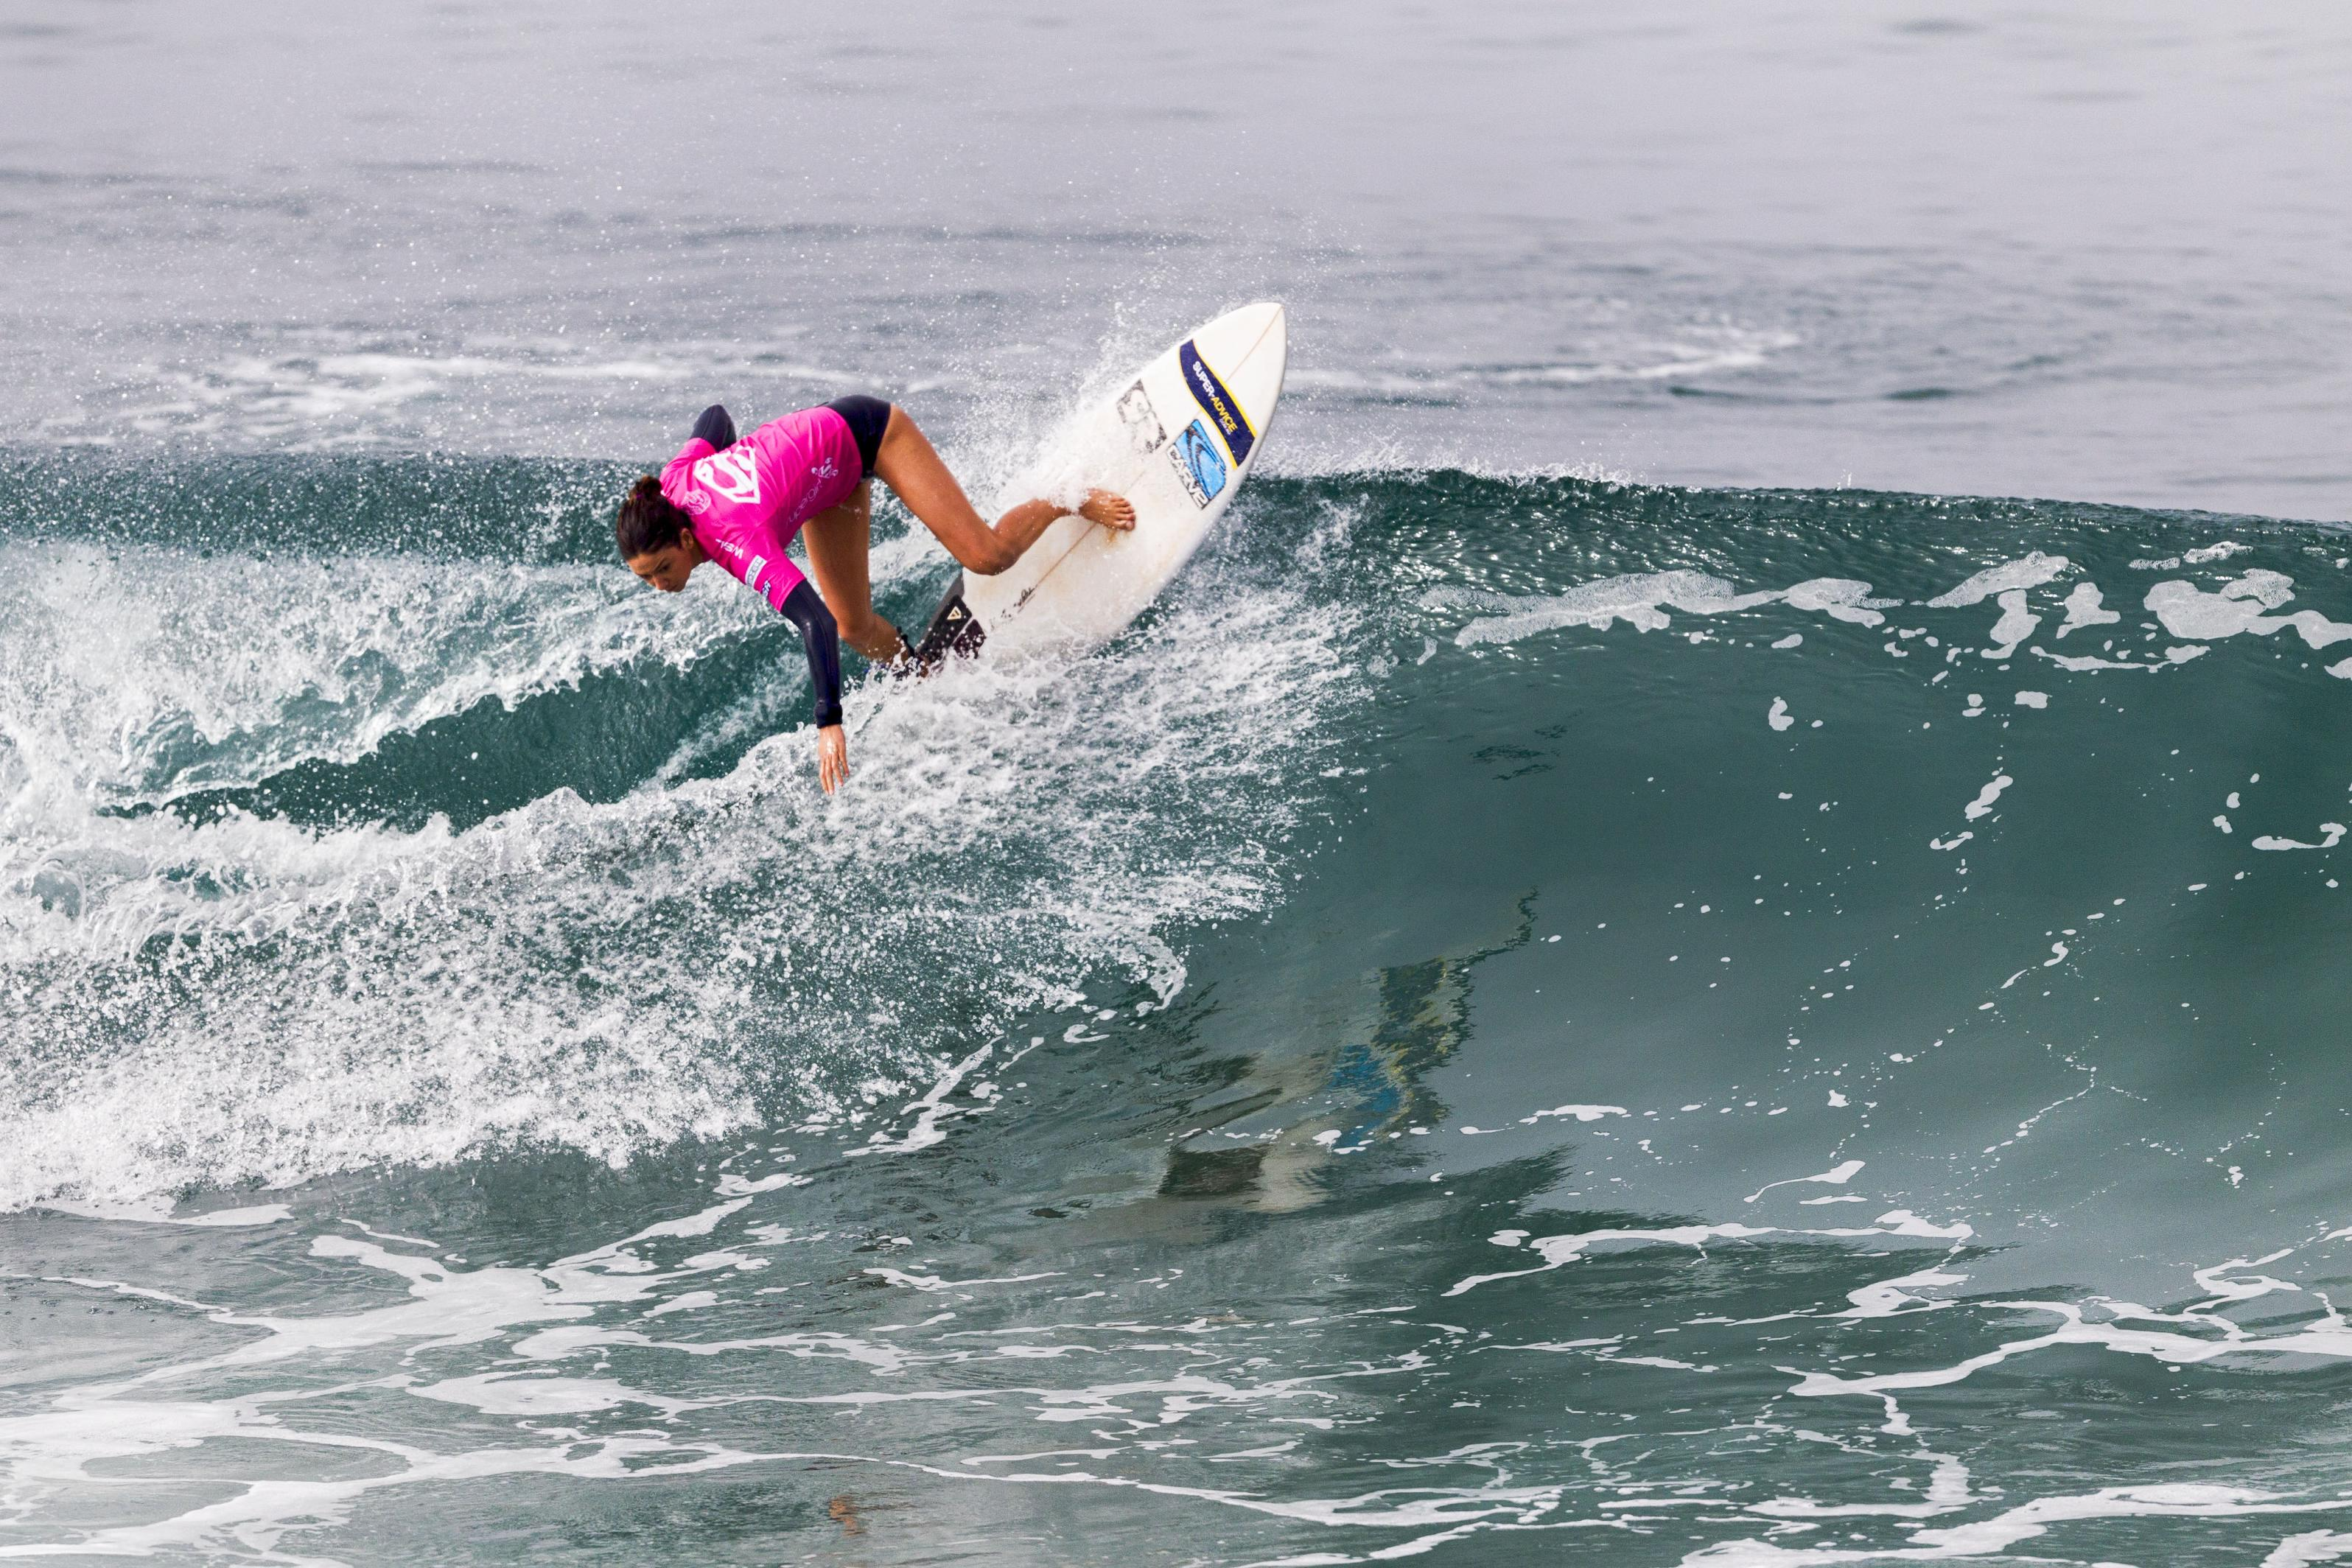 Mikaela Greene of Australia surfs in Round 3, Heat 11 during the Paul Mitchell Supergirl Pro in Oceanside. Photo by Bill Reilly